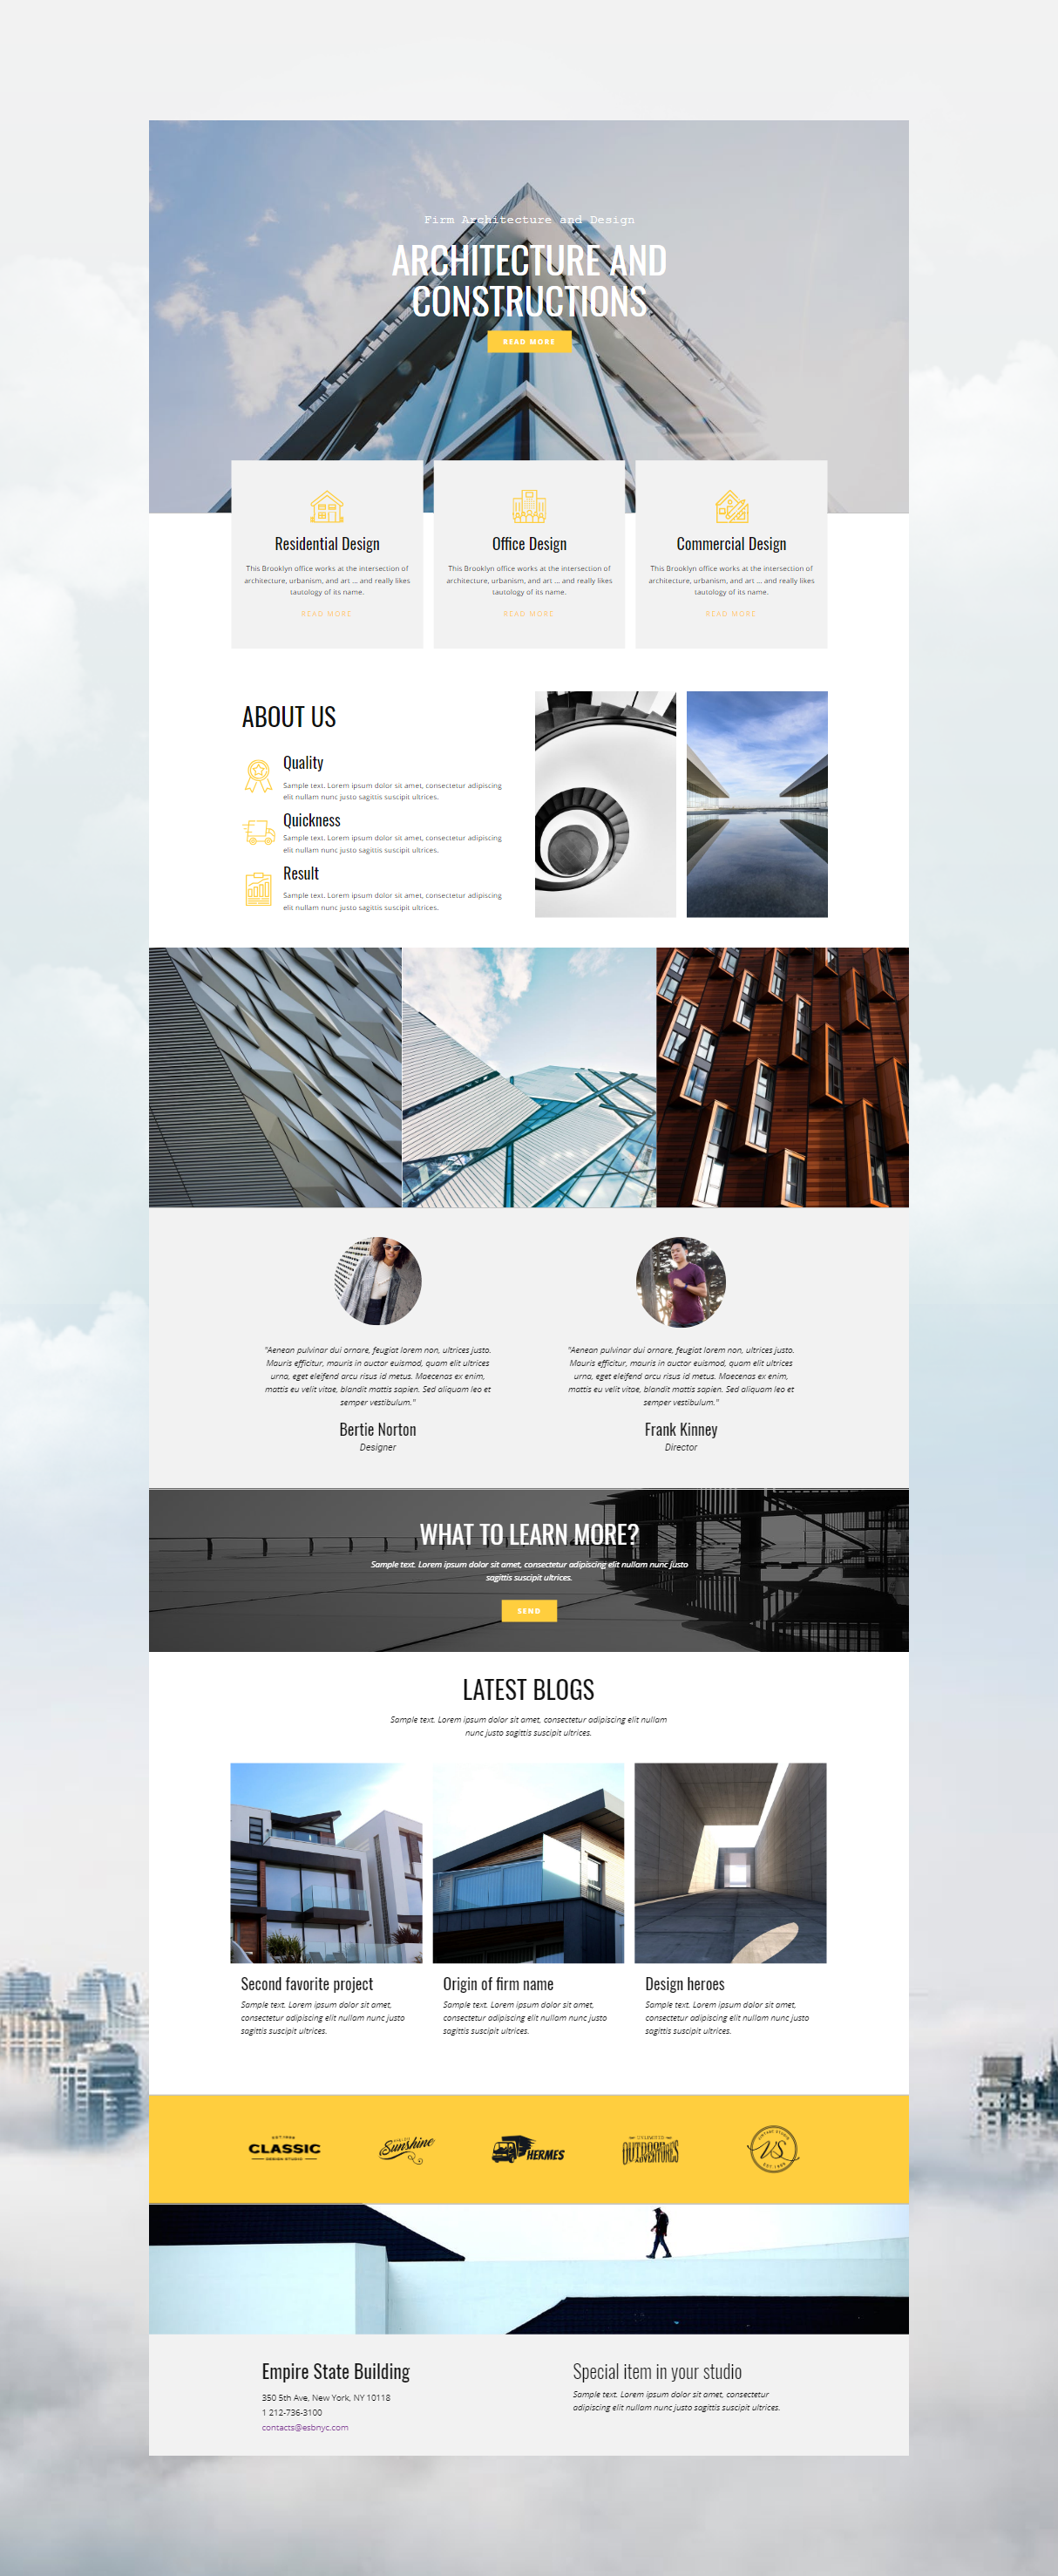 Nicepage Is A Free Mobile Friendly Website Builder Choose From 1000 Trendy Web Templates Custo In 2020 Corporate Website Design Web Layout Design Web Design Websites